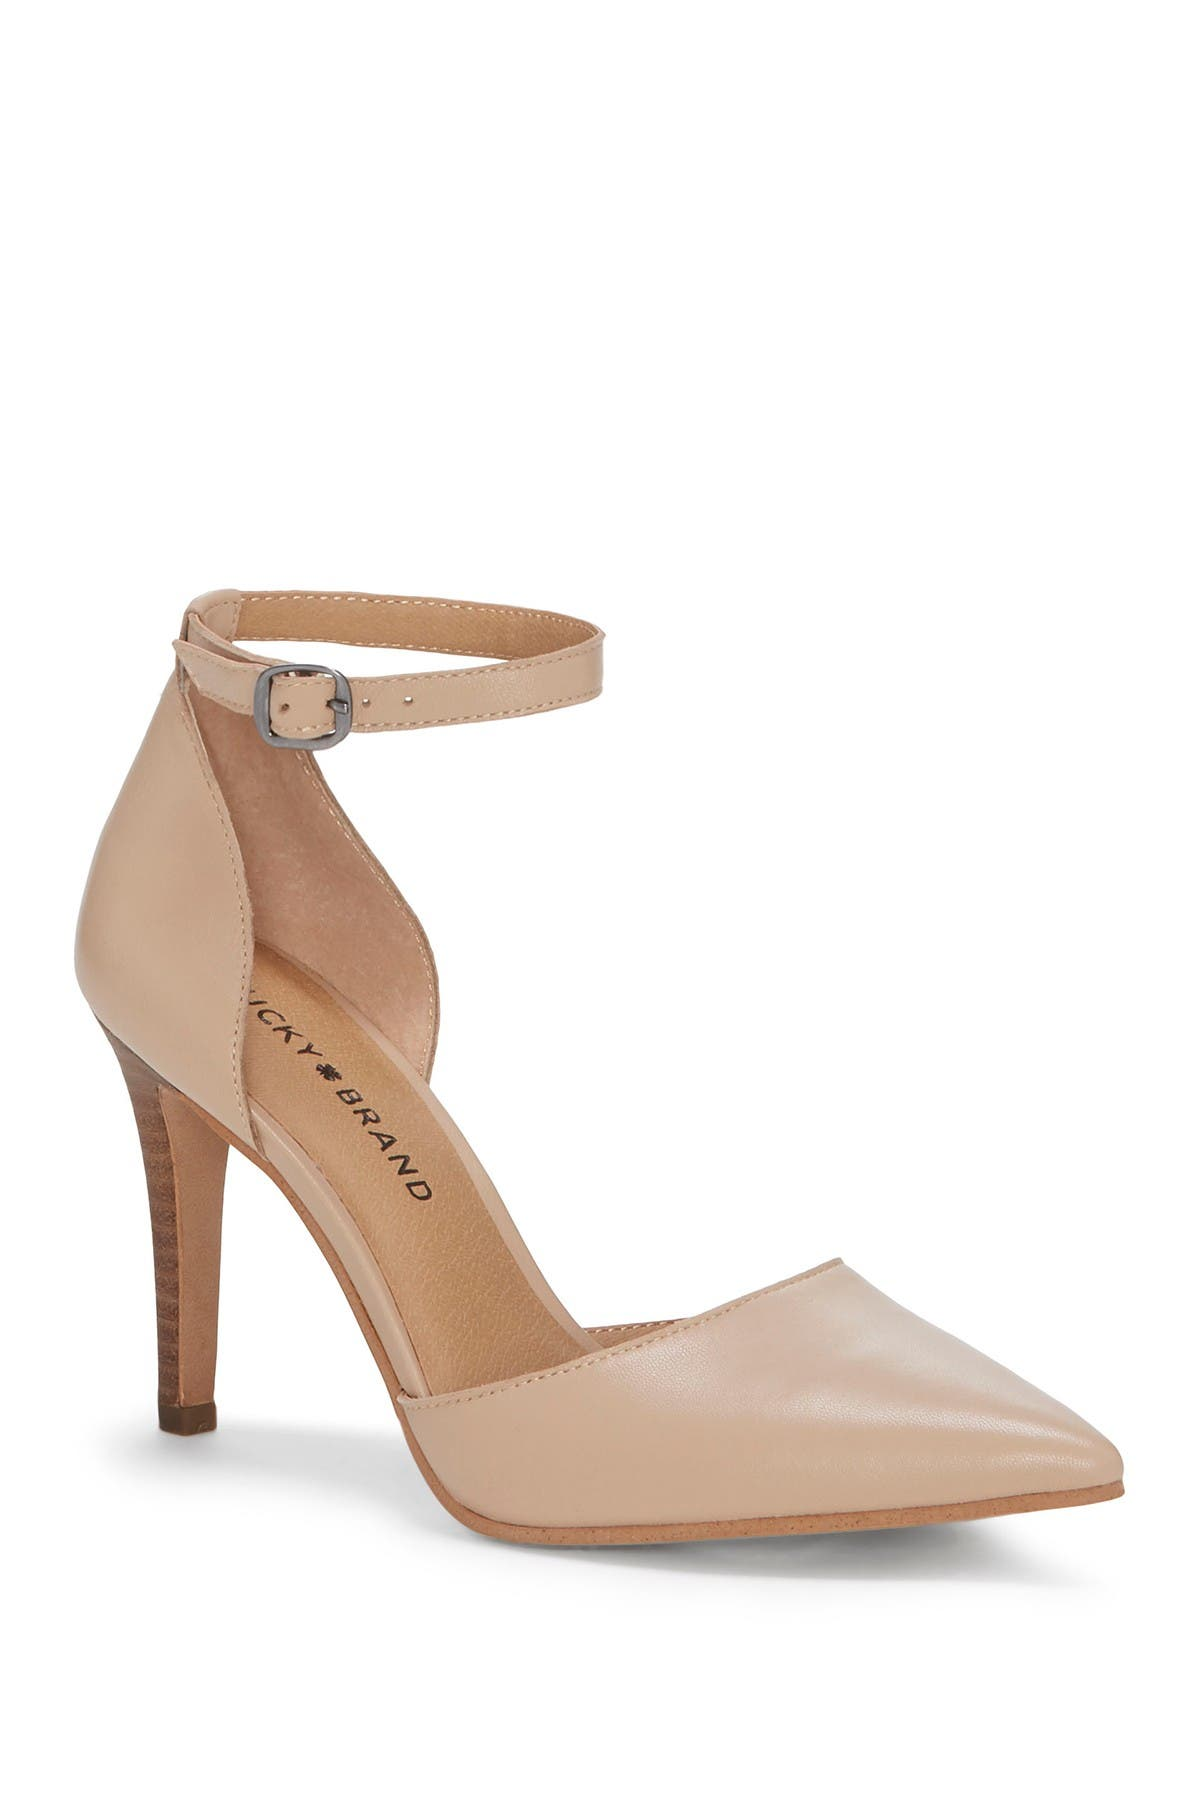 Image of Lucky Brand Tukko d'Orsay Ankle Strap Pump